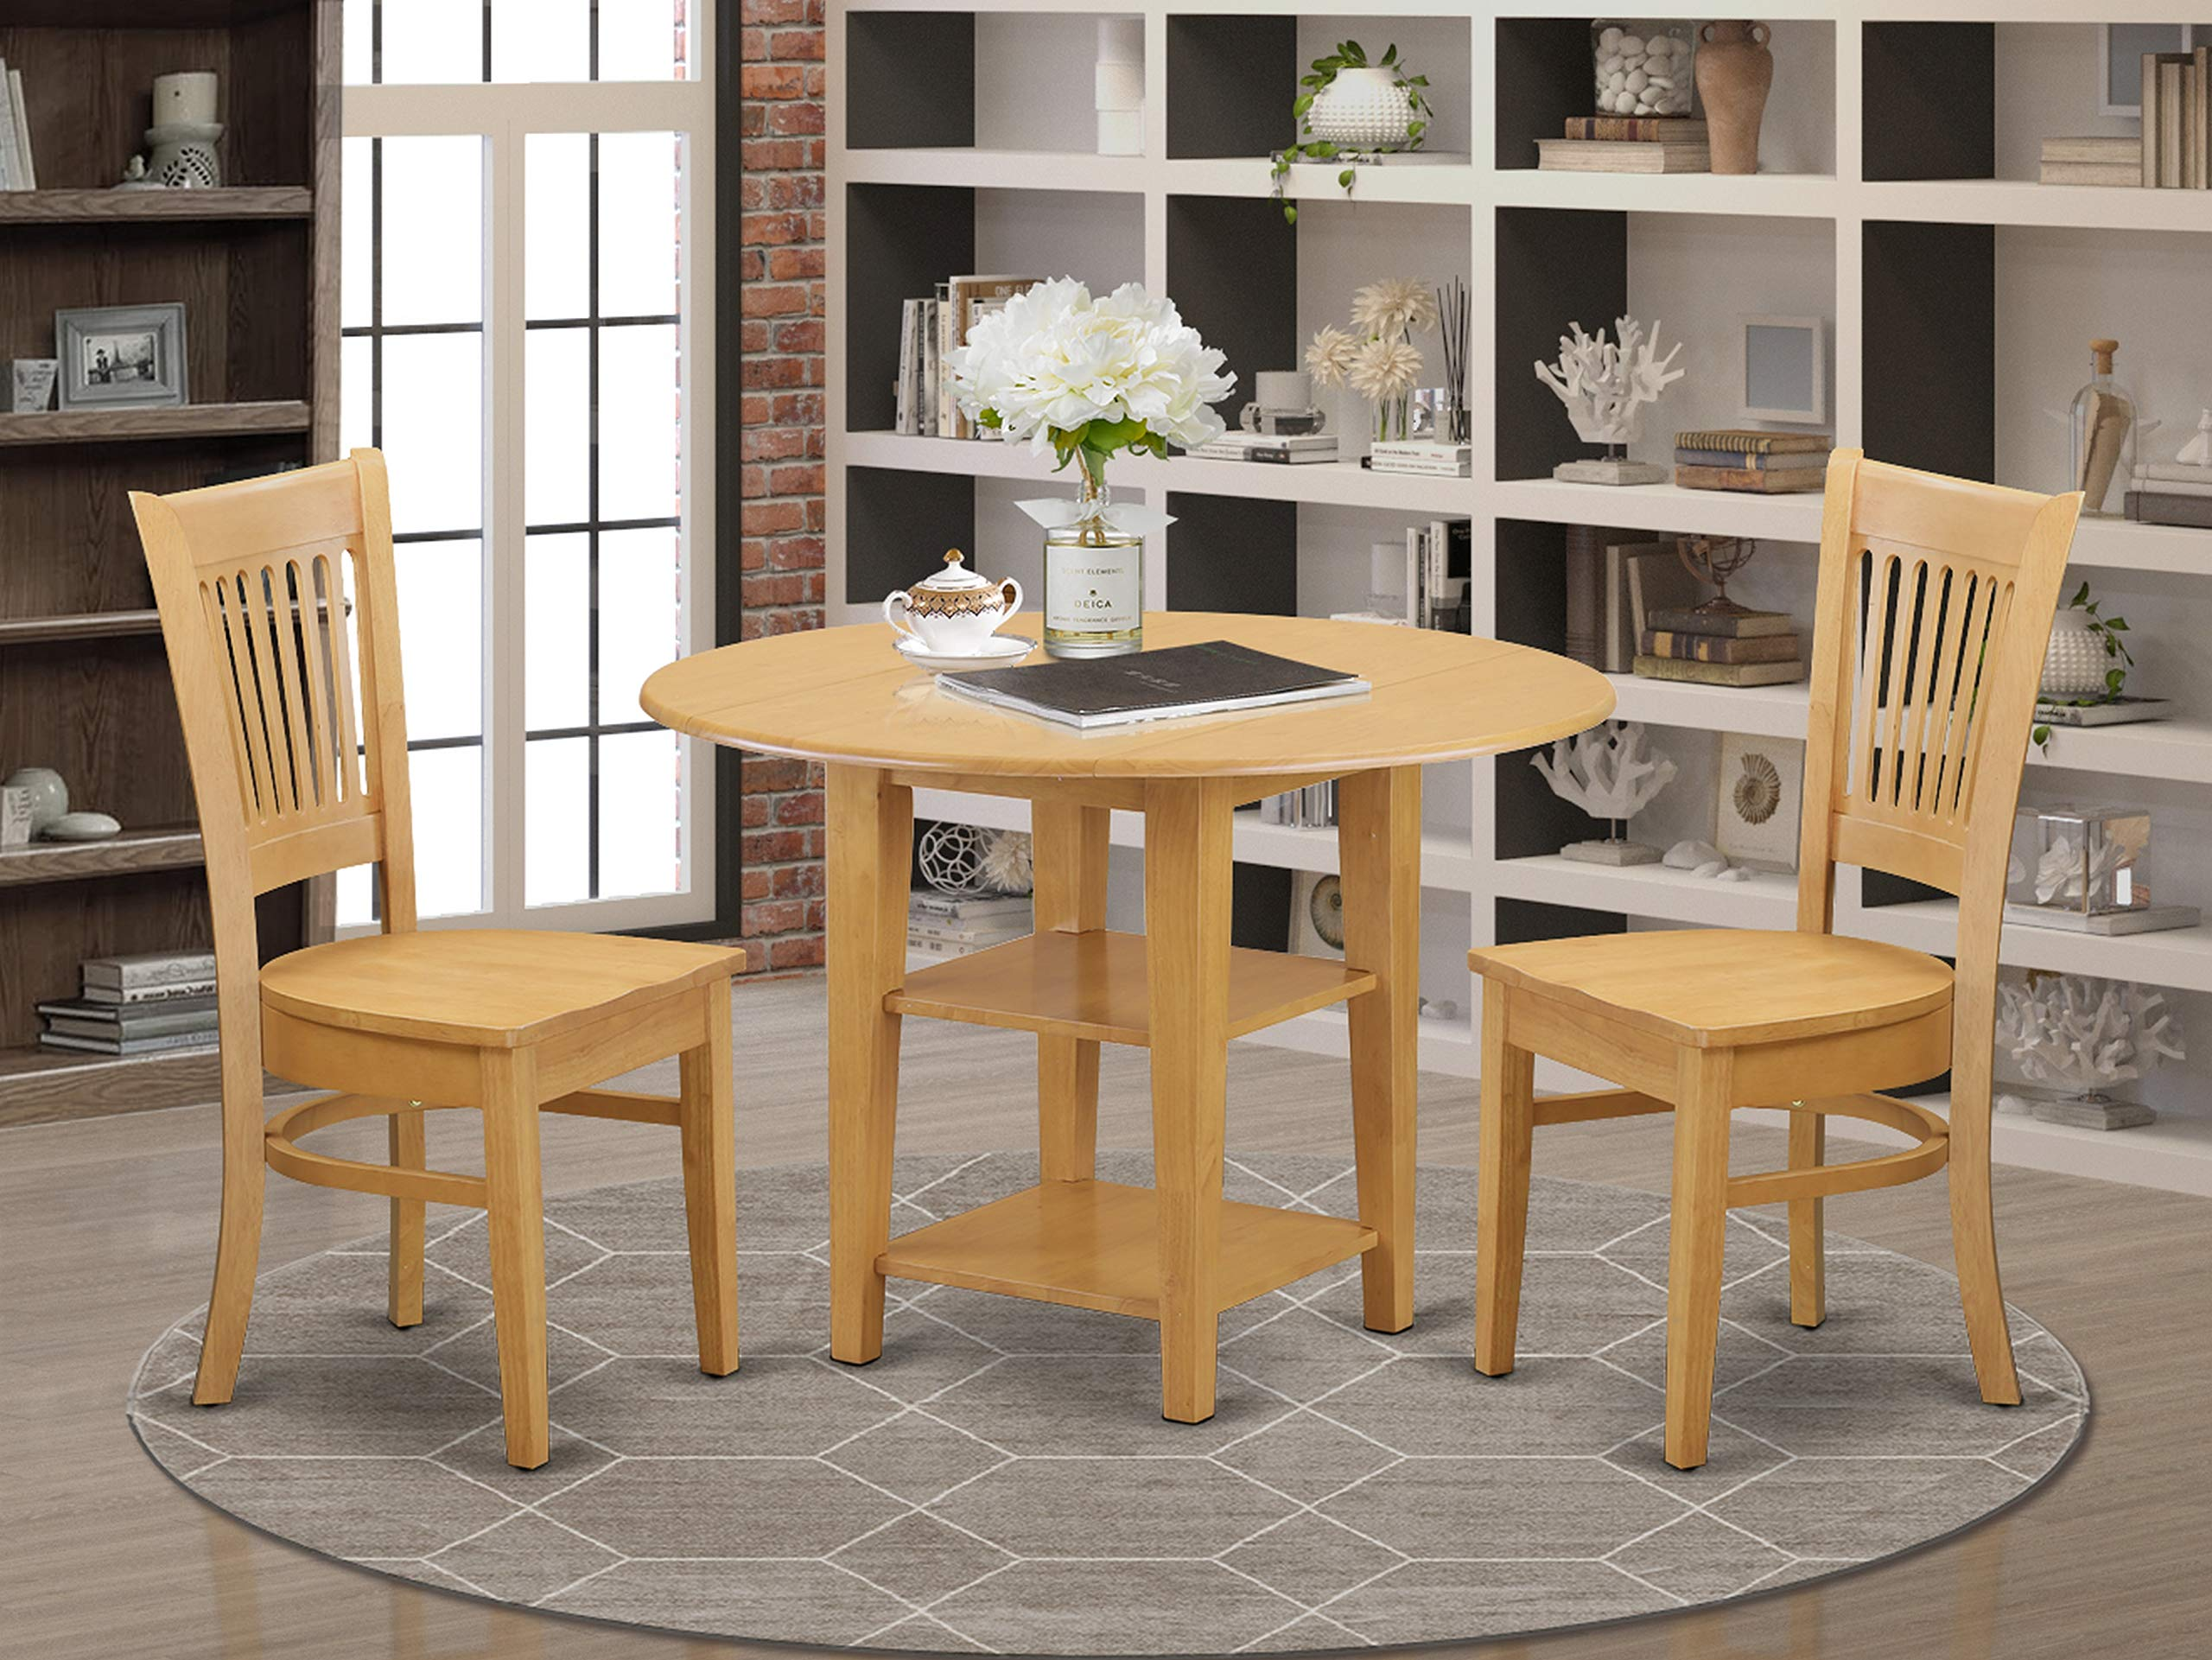 12 Piece Sudbury Set With One Round Dinette Table And Two Slat Back